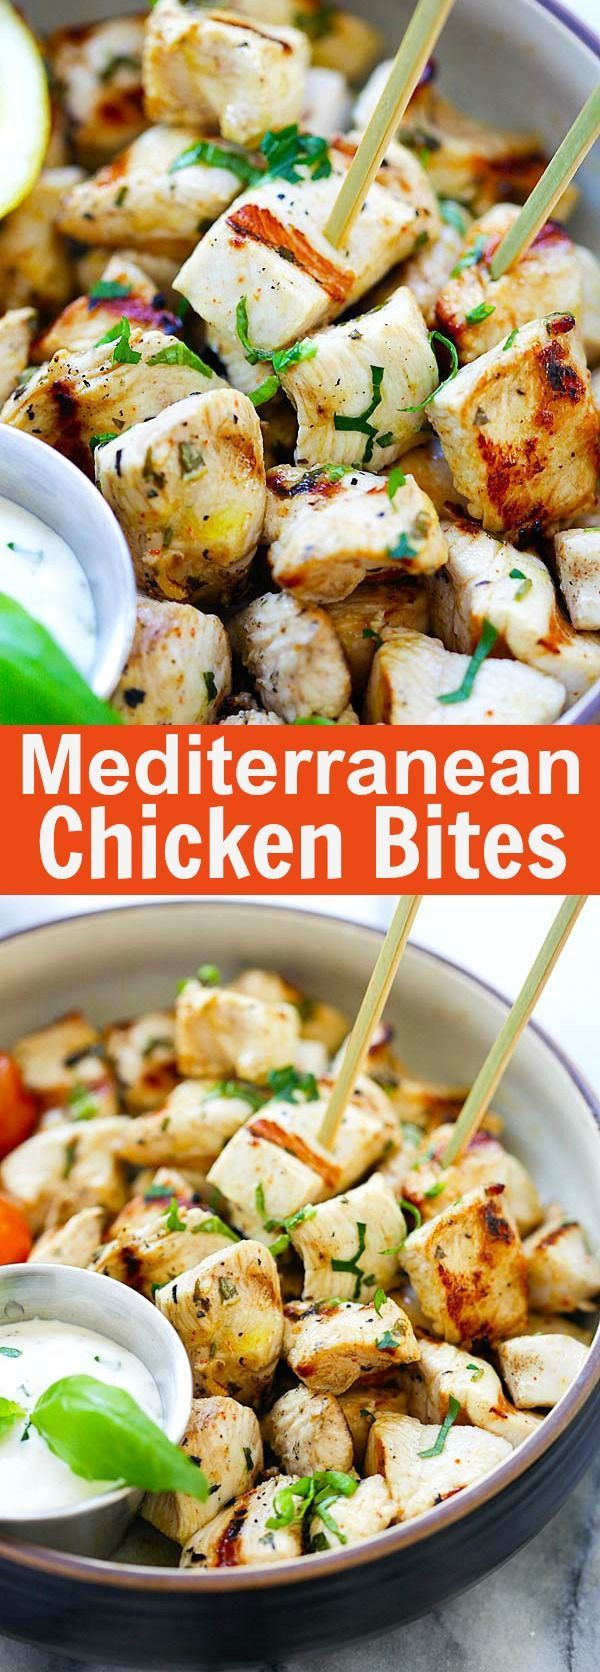 Mediterranean Chicken Bites – juicy, tender and the most flavorful chicken bites with Mediterranean marinade. So easy to make and delicious  :